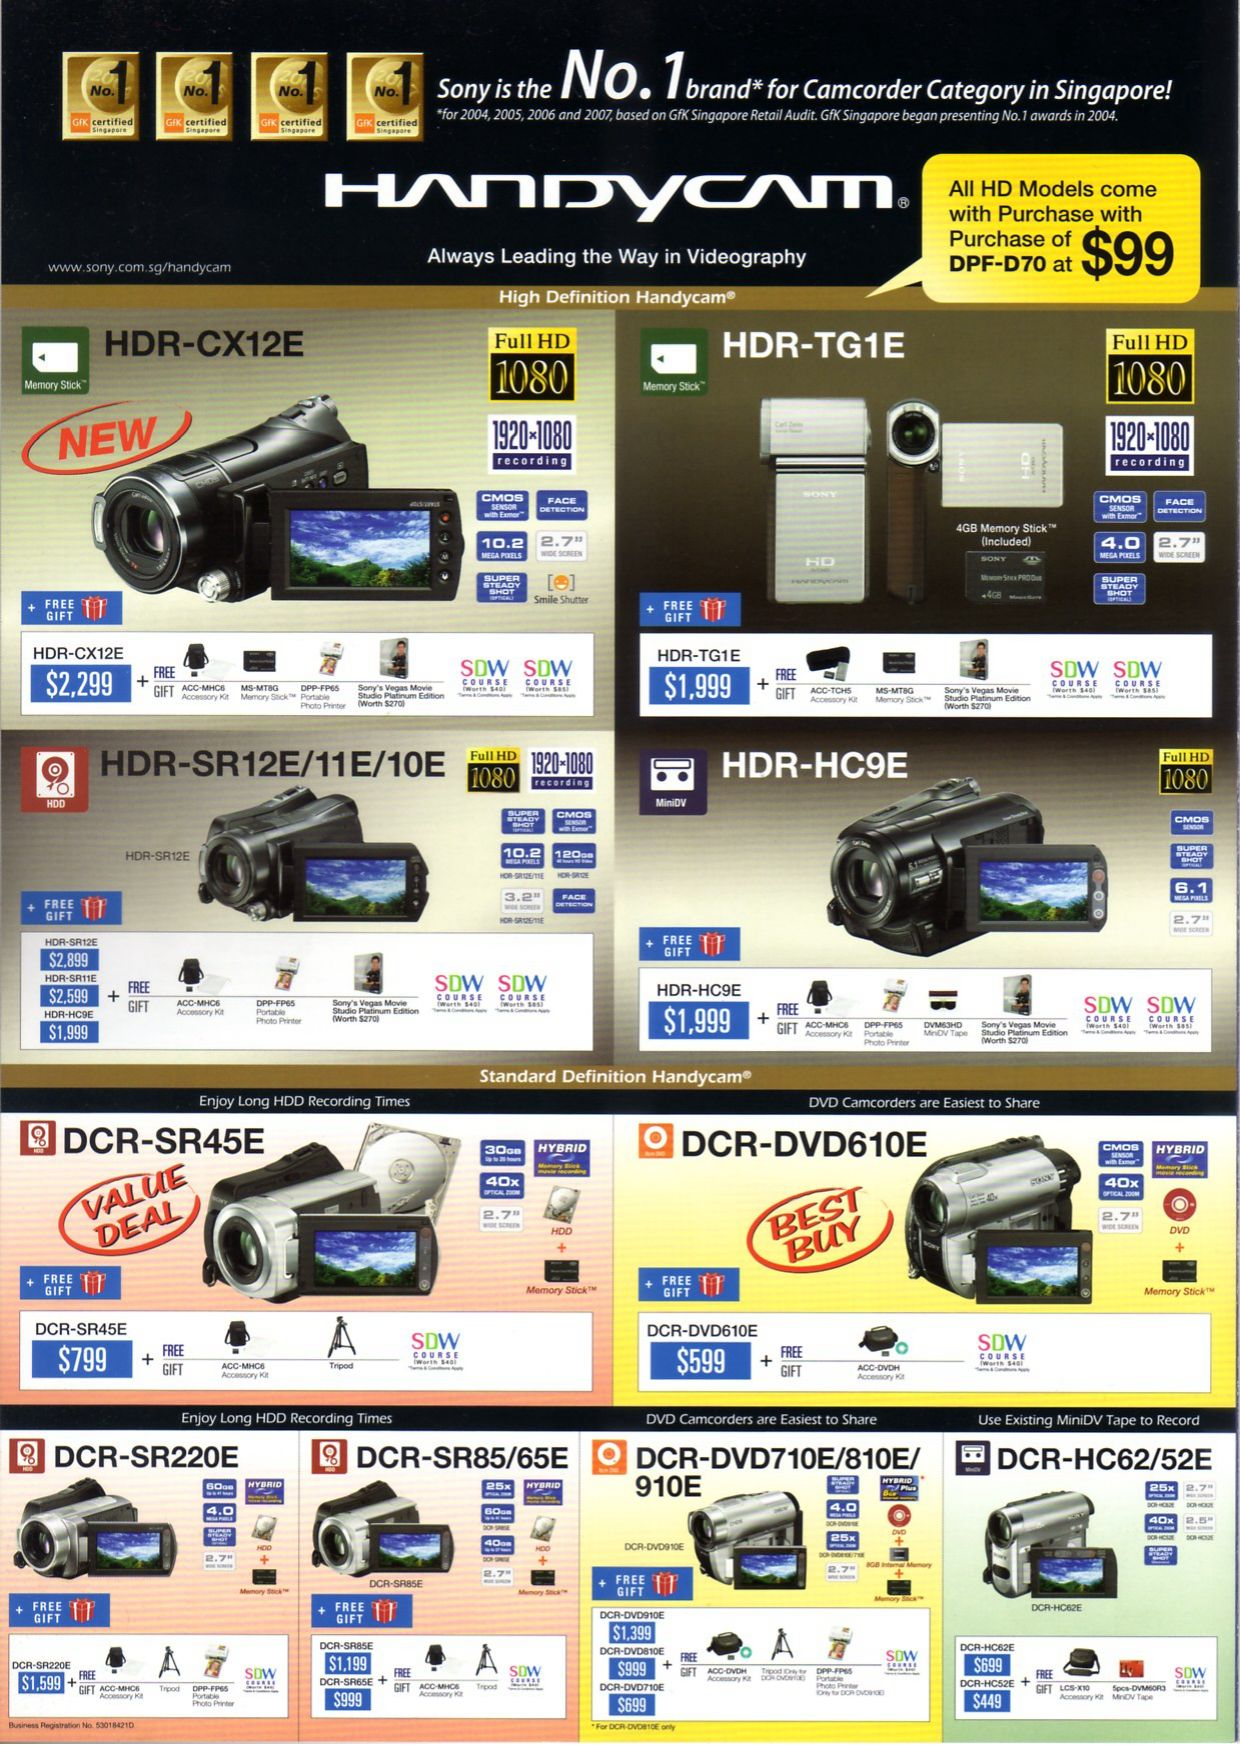 Comex 2008 price list image brochure of Sony Camcorders Flyer4.pdf 01